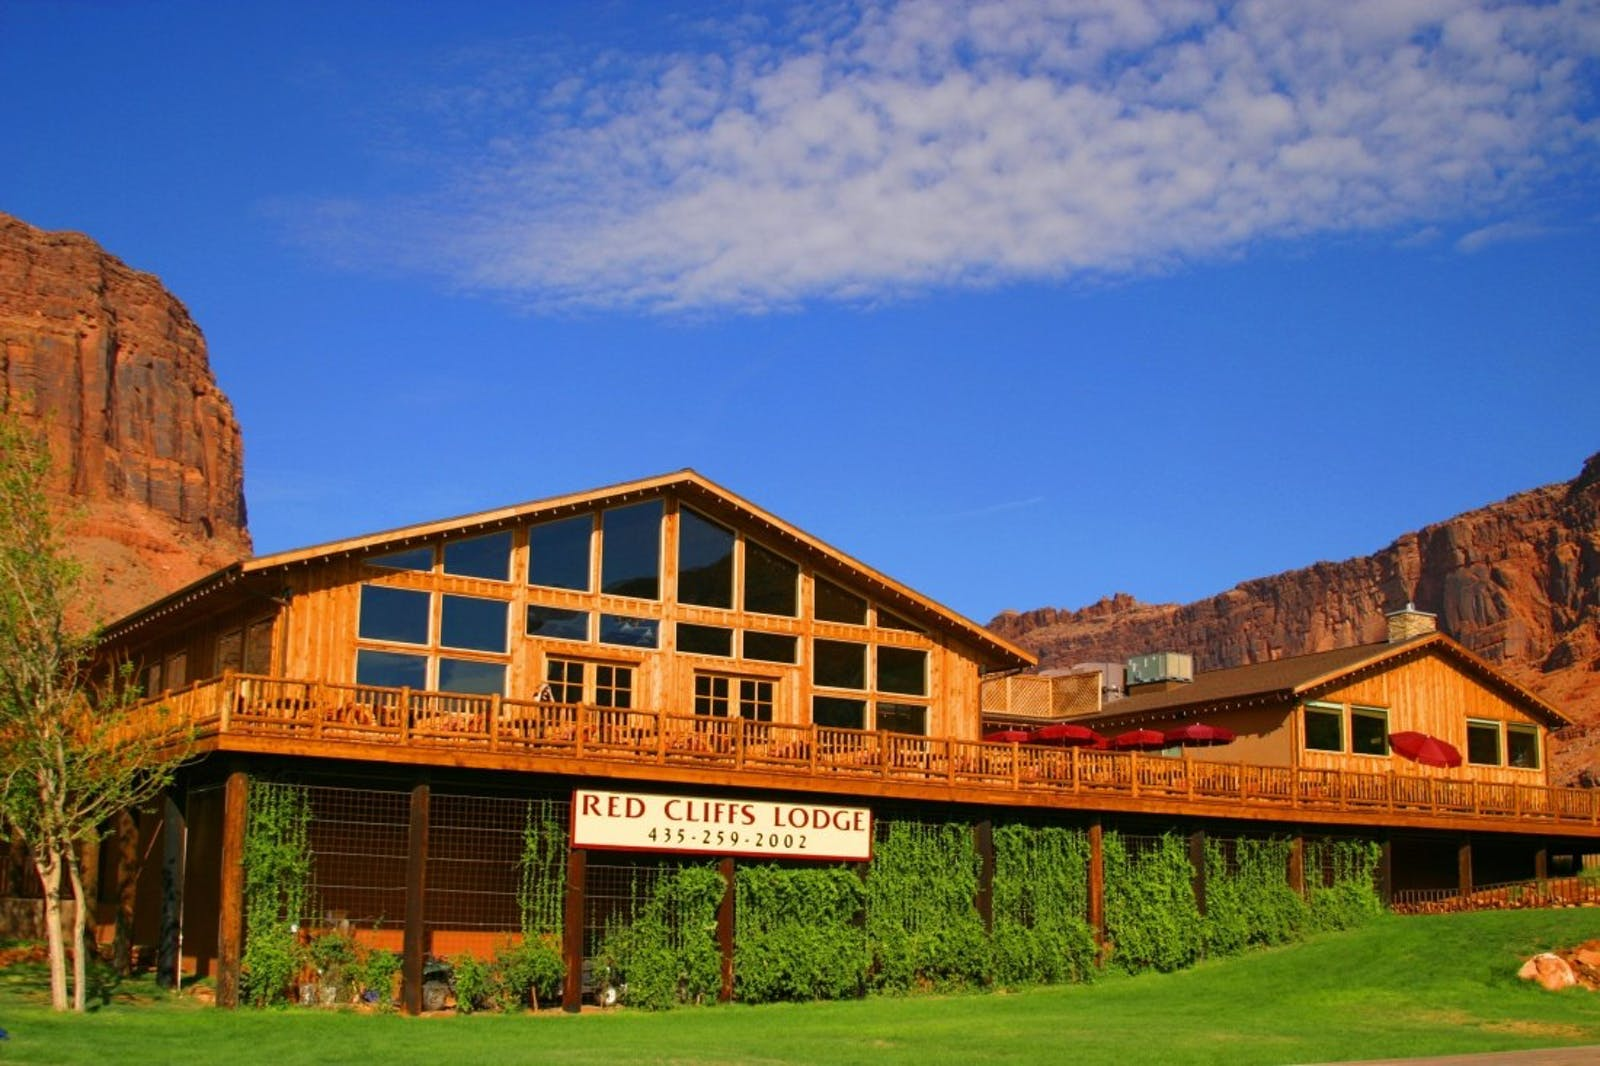 Exterior of Red Cliffs Lodge, Utah